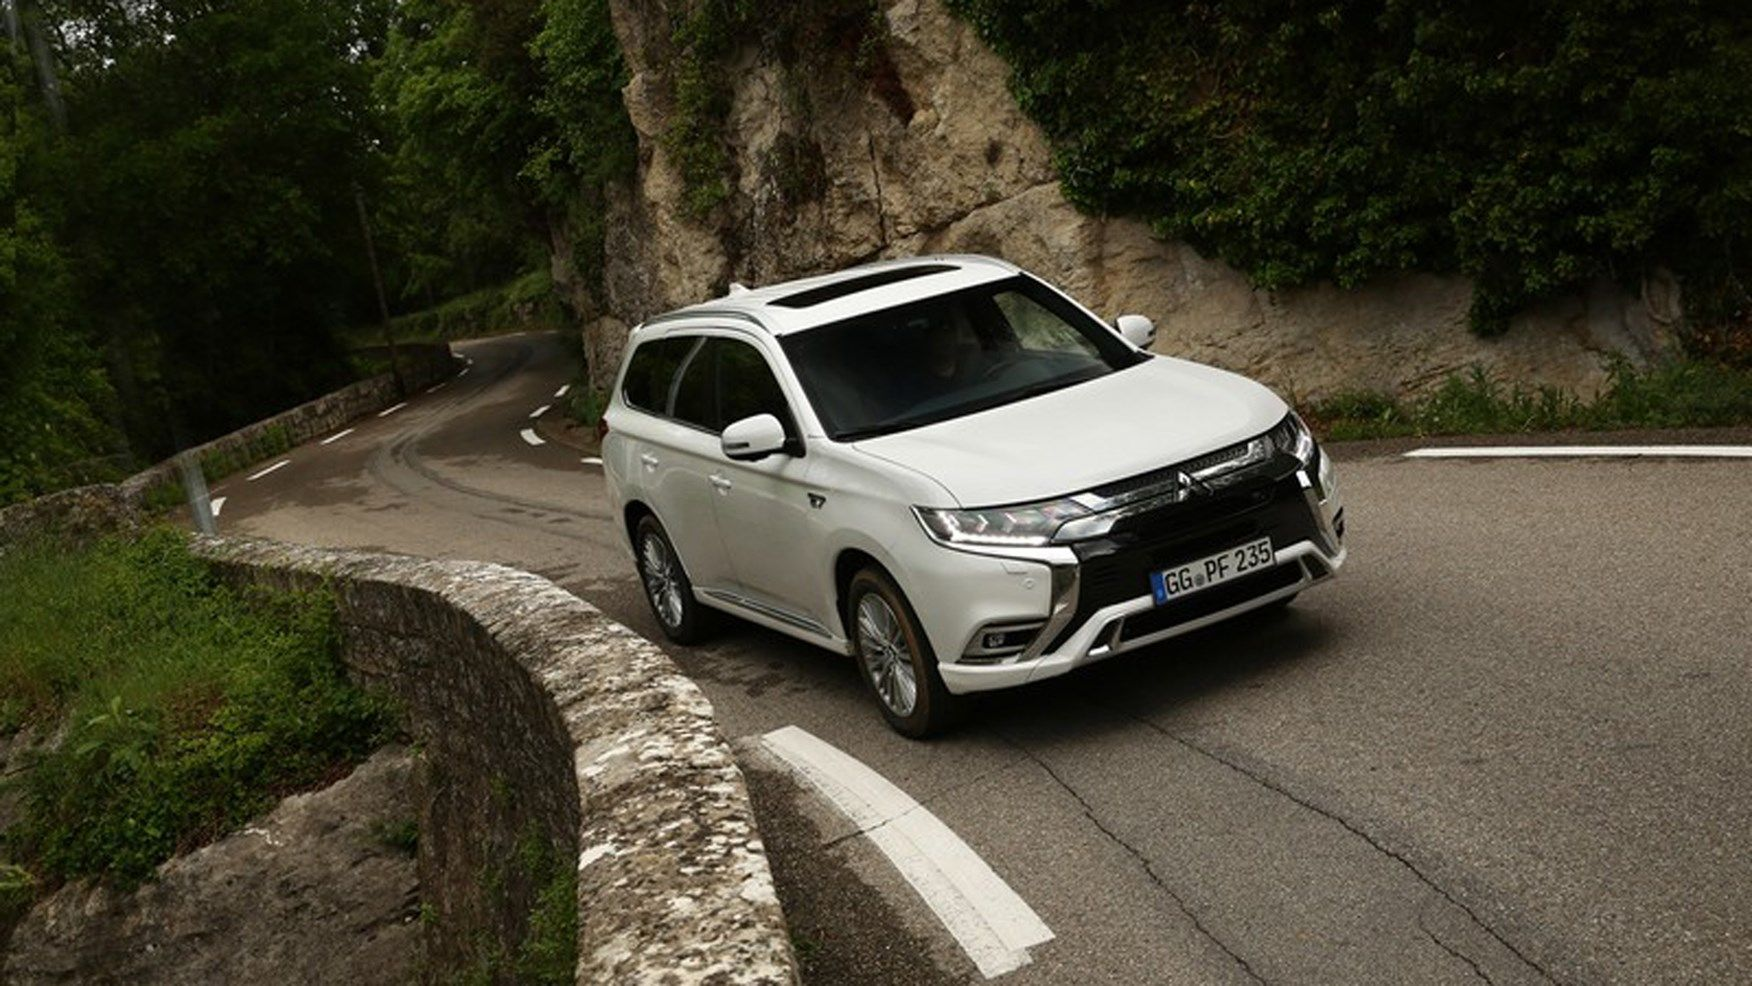 Mitsubishi Outlander Phev Review The Hybrid Evolves In 2020 Mitsubishi Outlander Outlander Phev Outlander